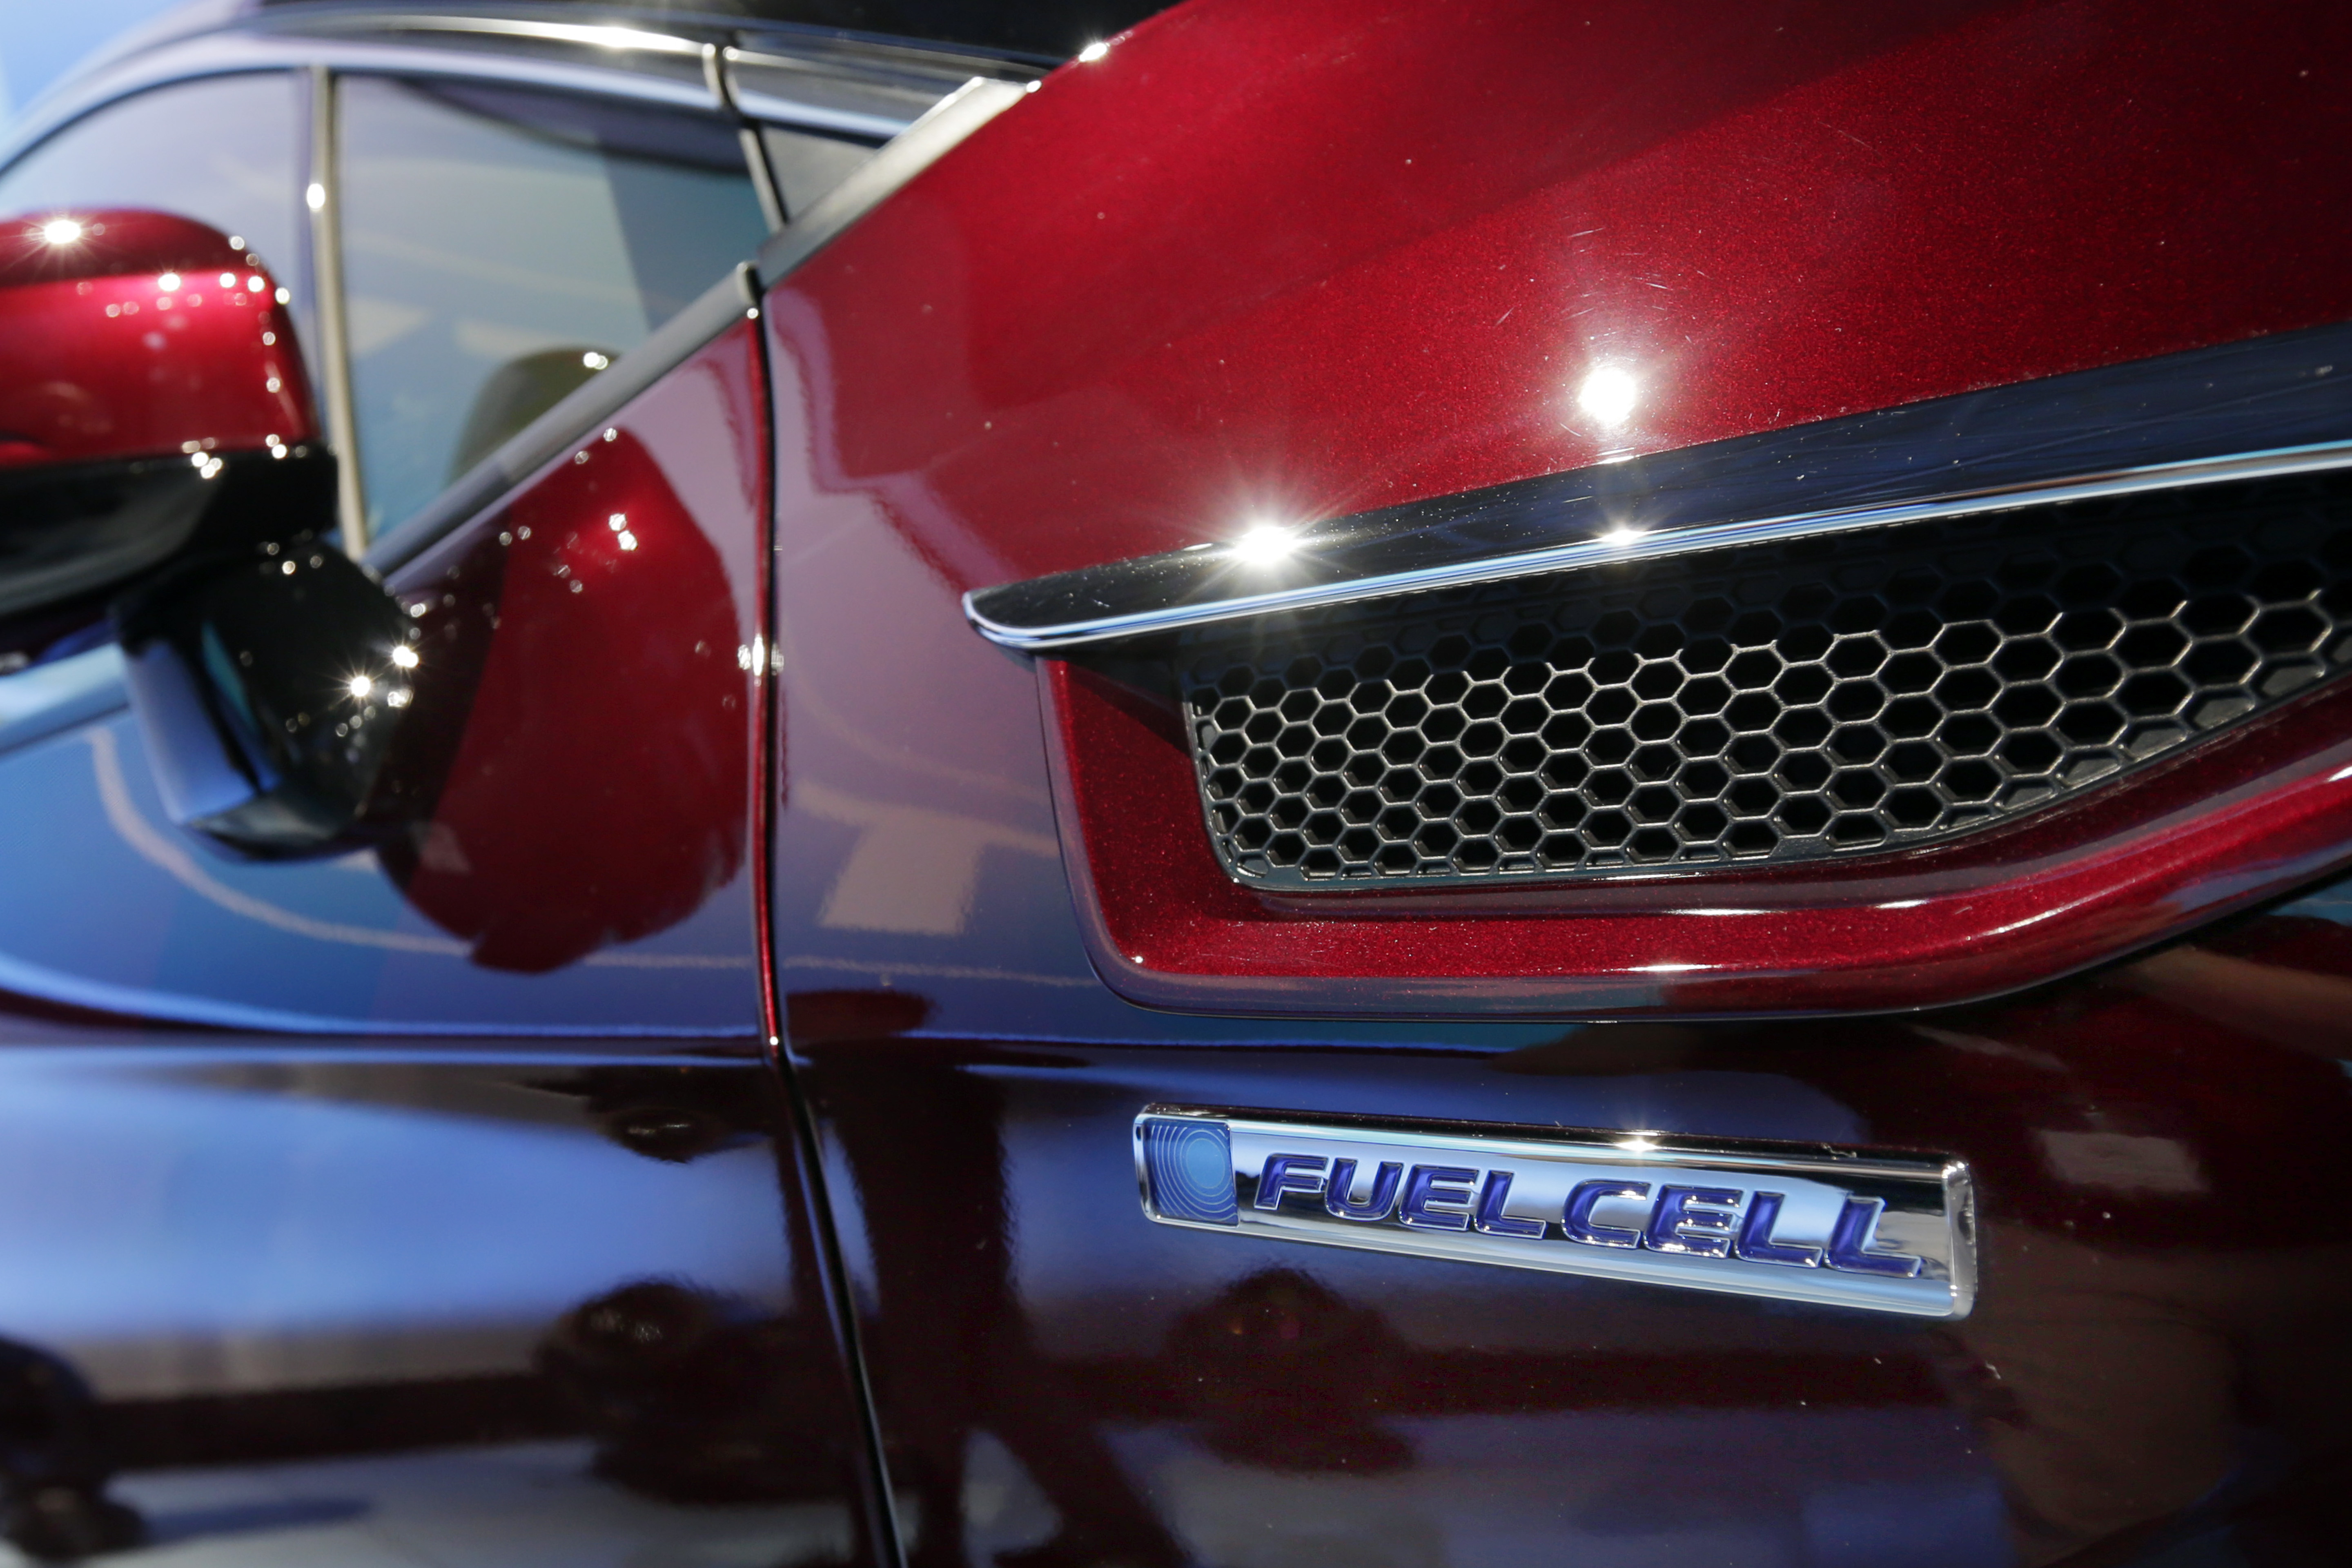 Auto Show Honda-1 The fuel cell logo adorns the fender of the Honda Clarity at a media preview at the New York International Auto Show, at the Jacob Javits Center in New York, Wednesday, April 12, 2017. (AP Photo/Richard Drew)